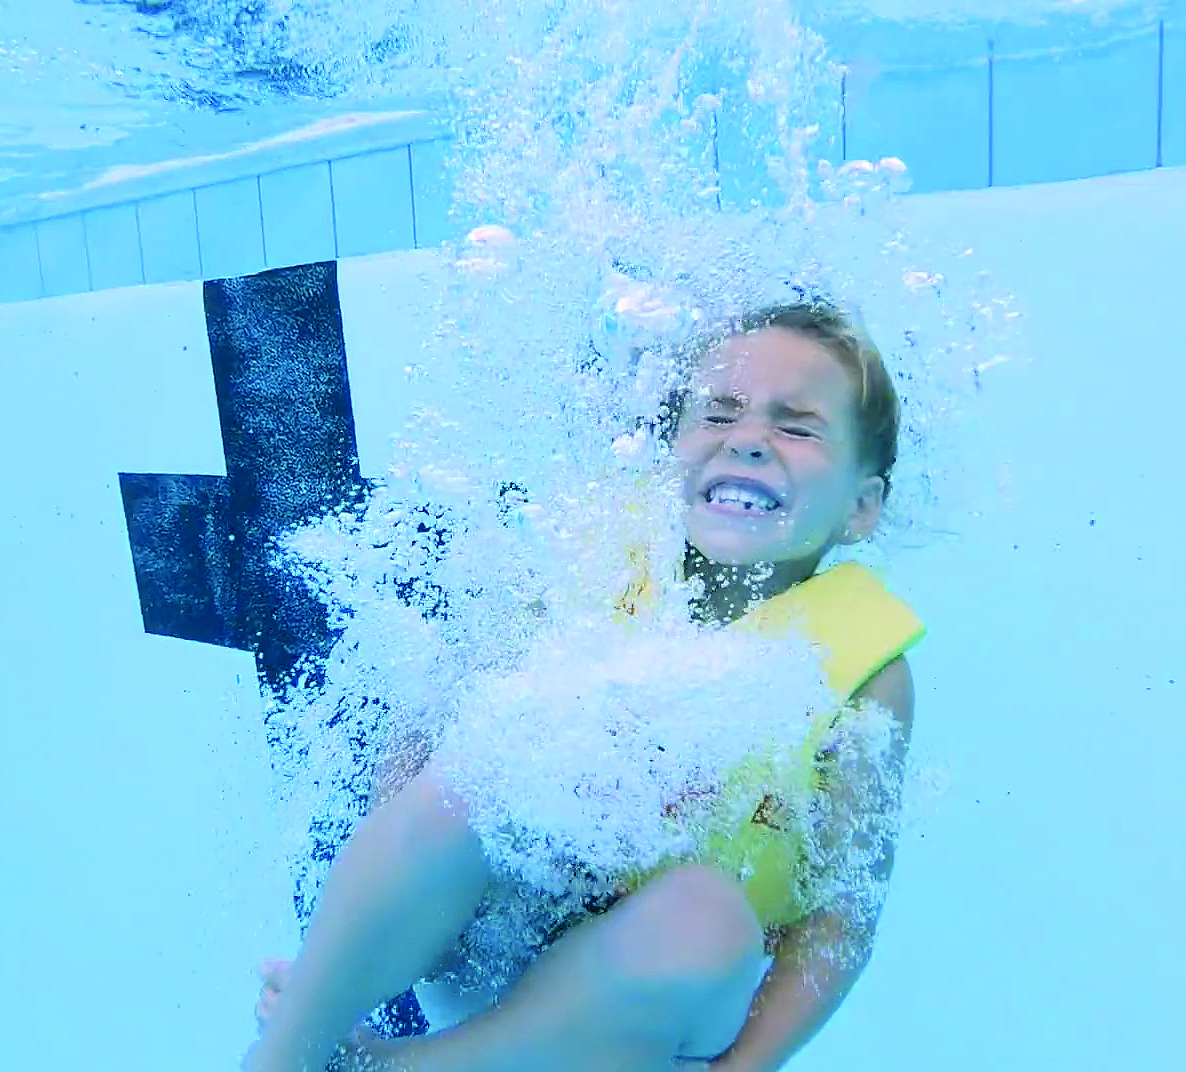 The Surf N'Slide Water Park offers fun for all ages